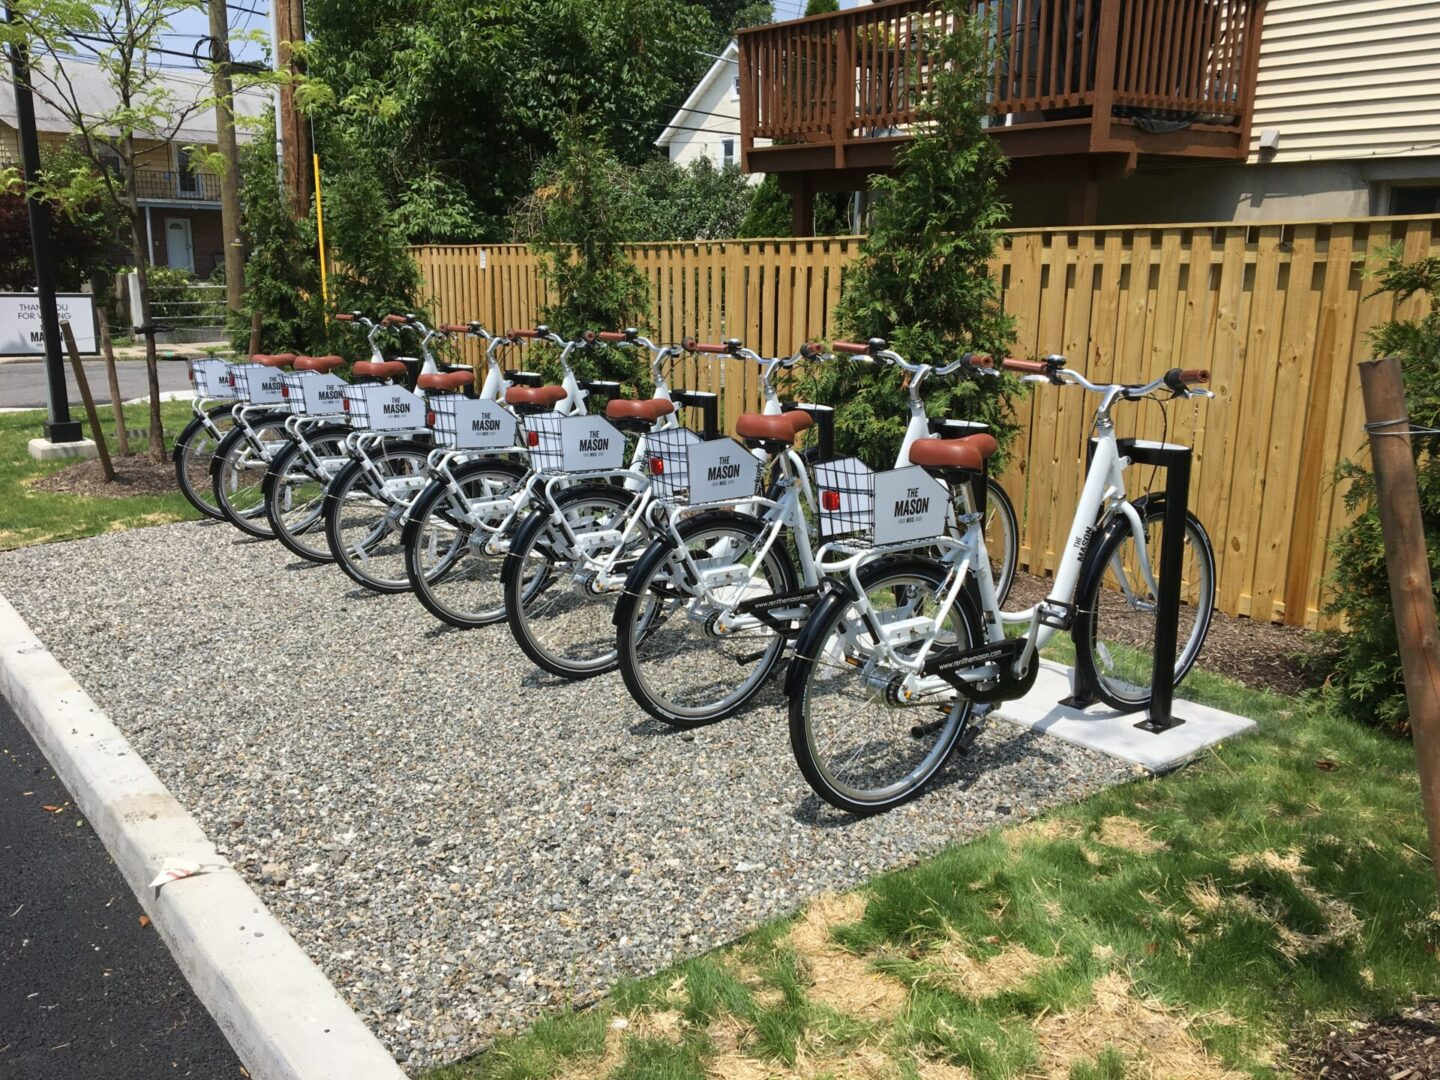 6 white bicycles lined up